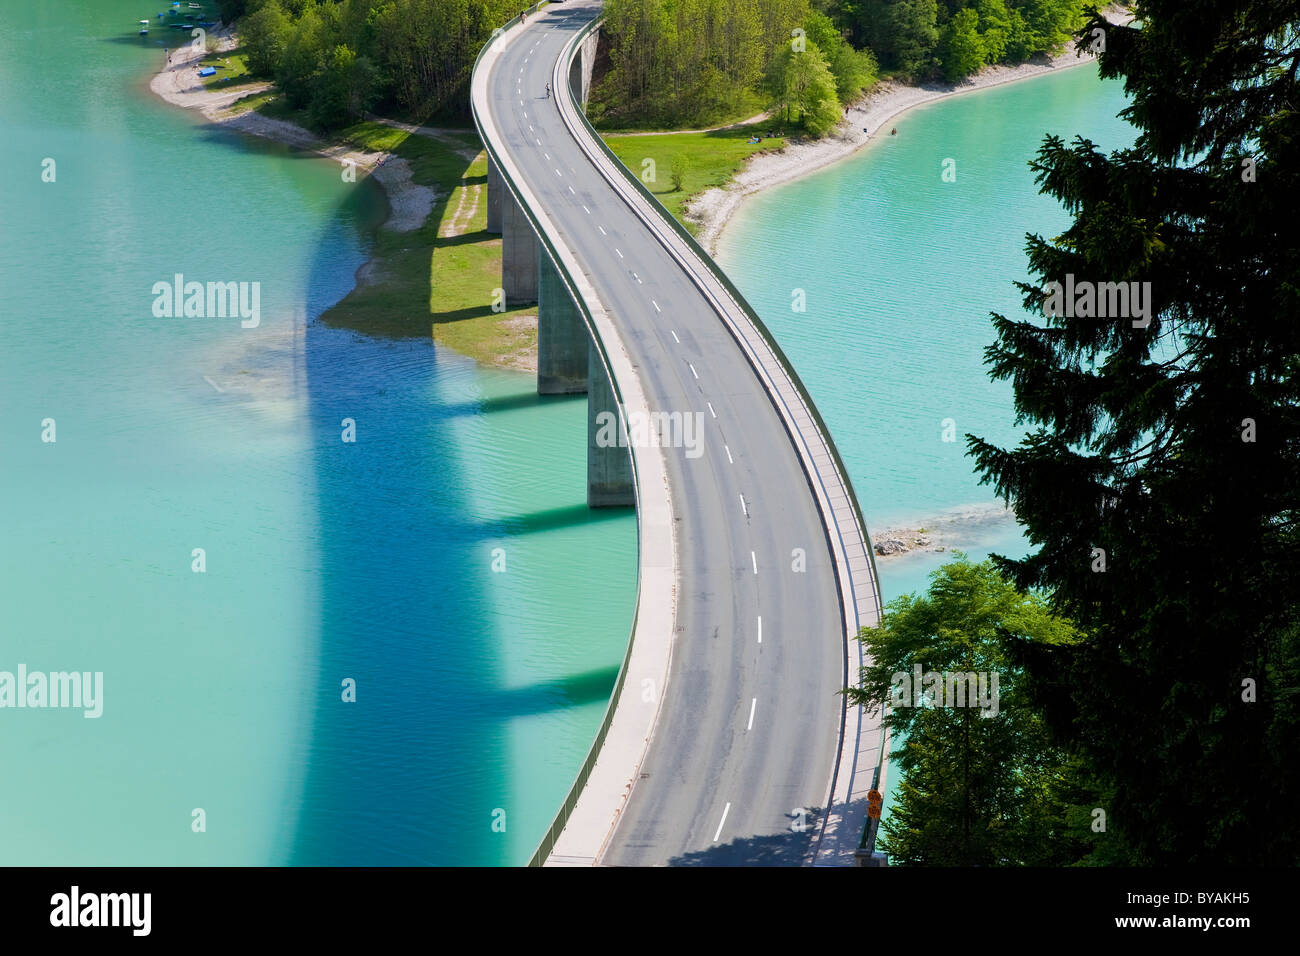 Sylvenstein Lake and Bridge Bavarian Alps Bavaria Germany - Stock Image